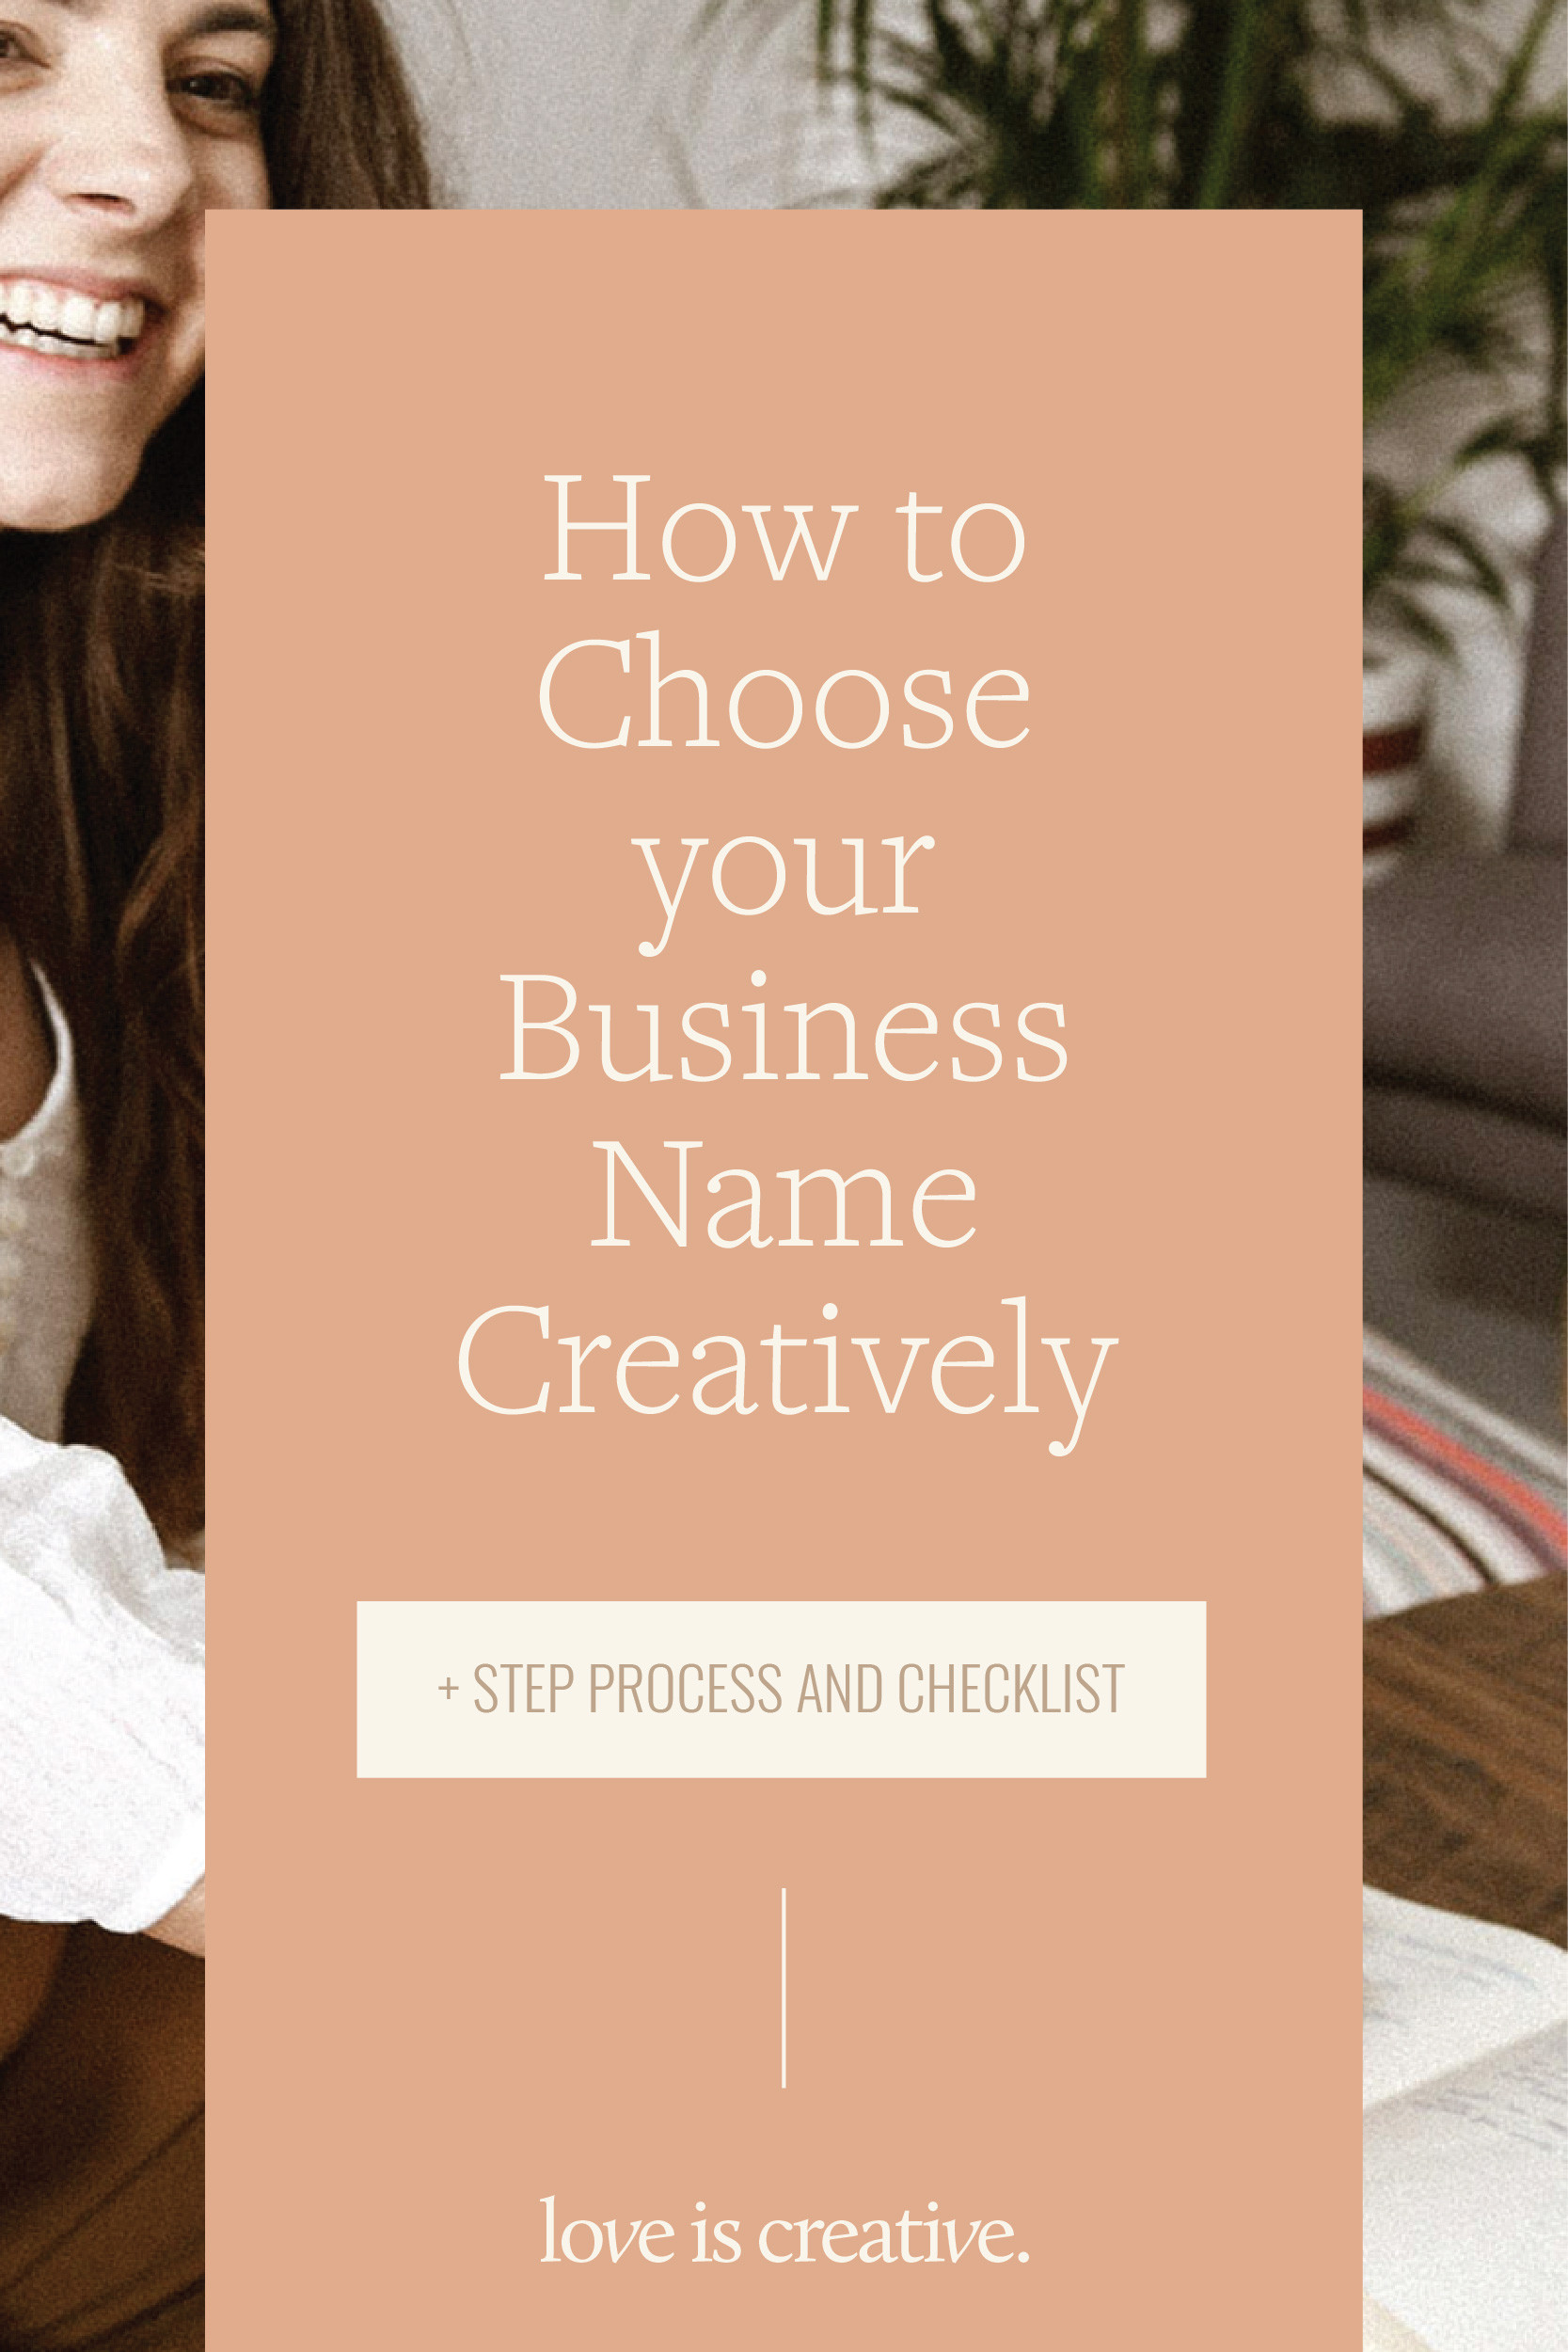 How to Choose your Name Creatively